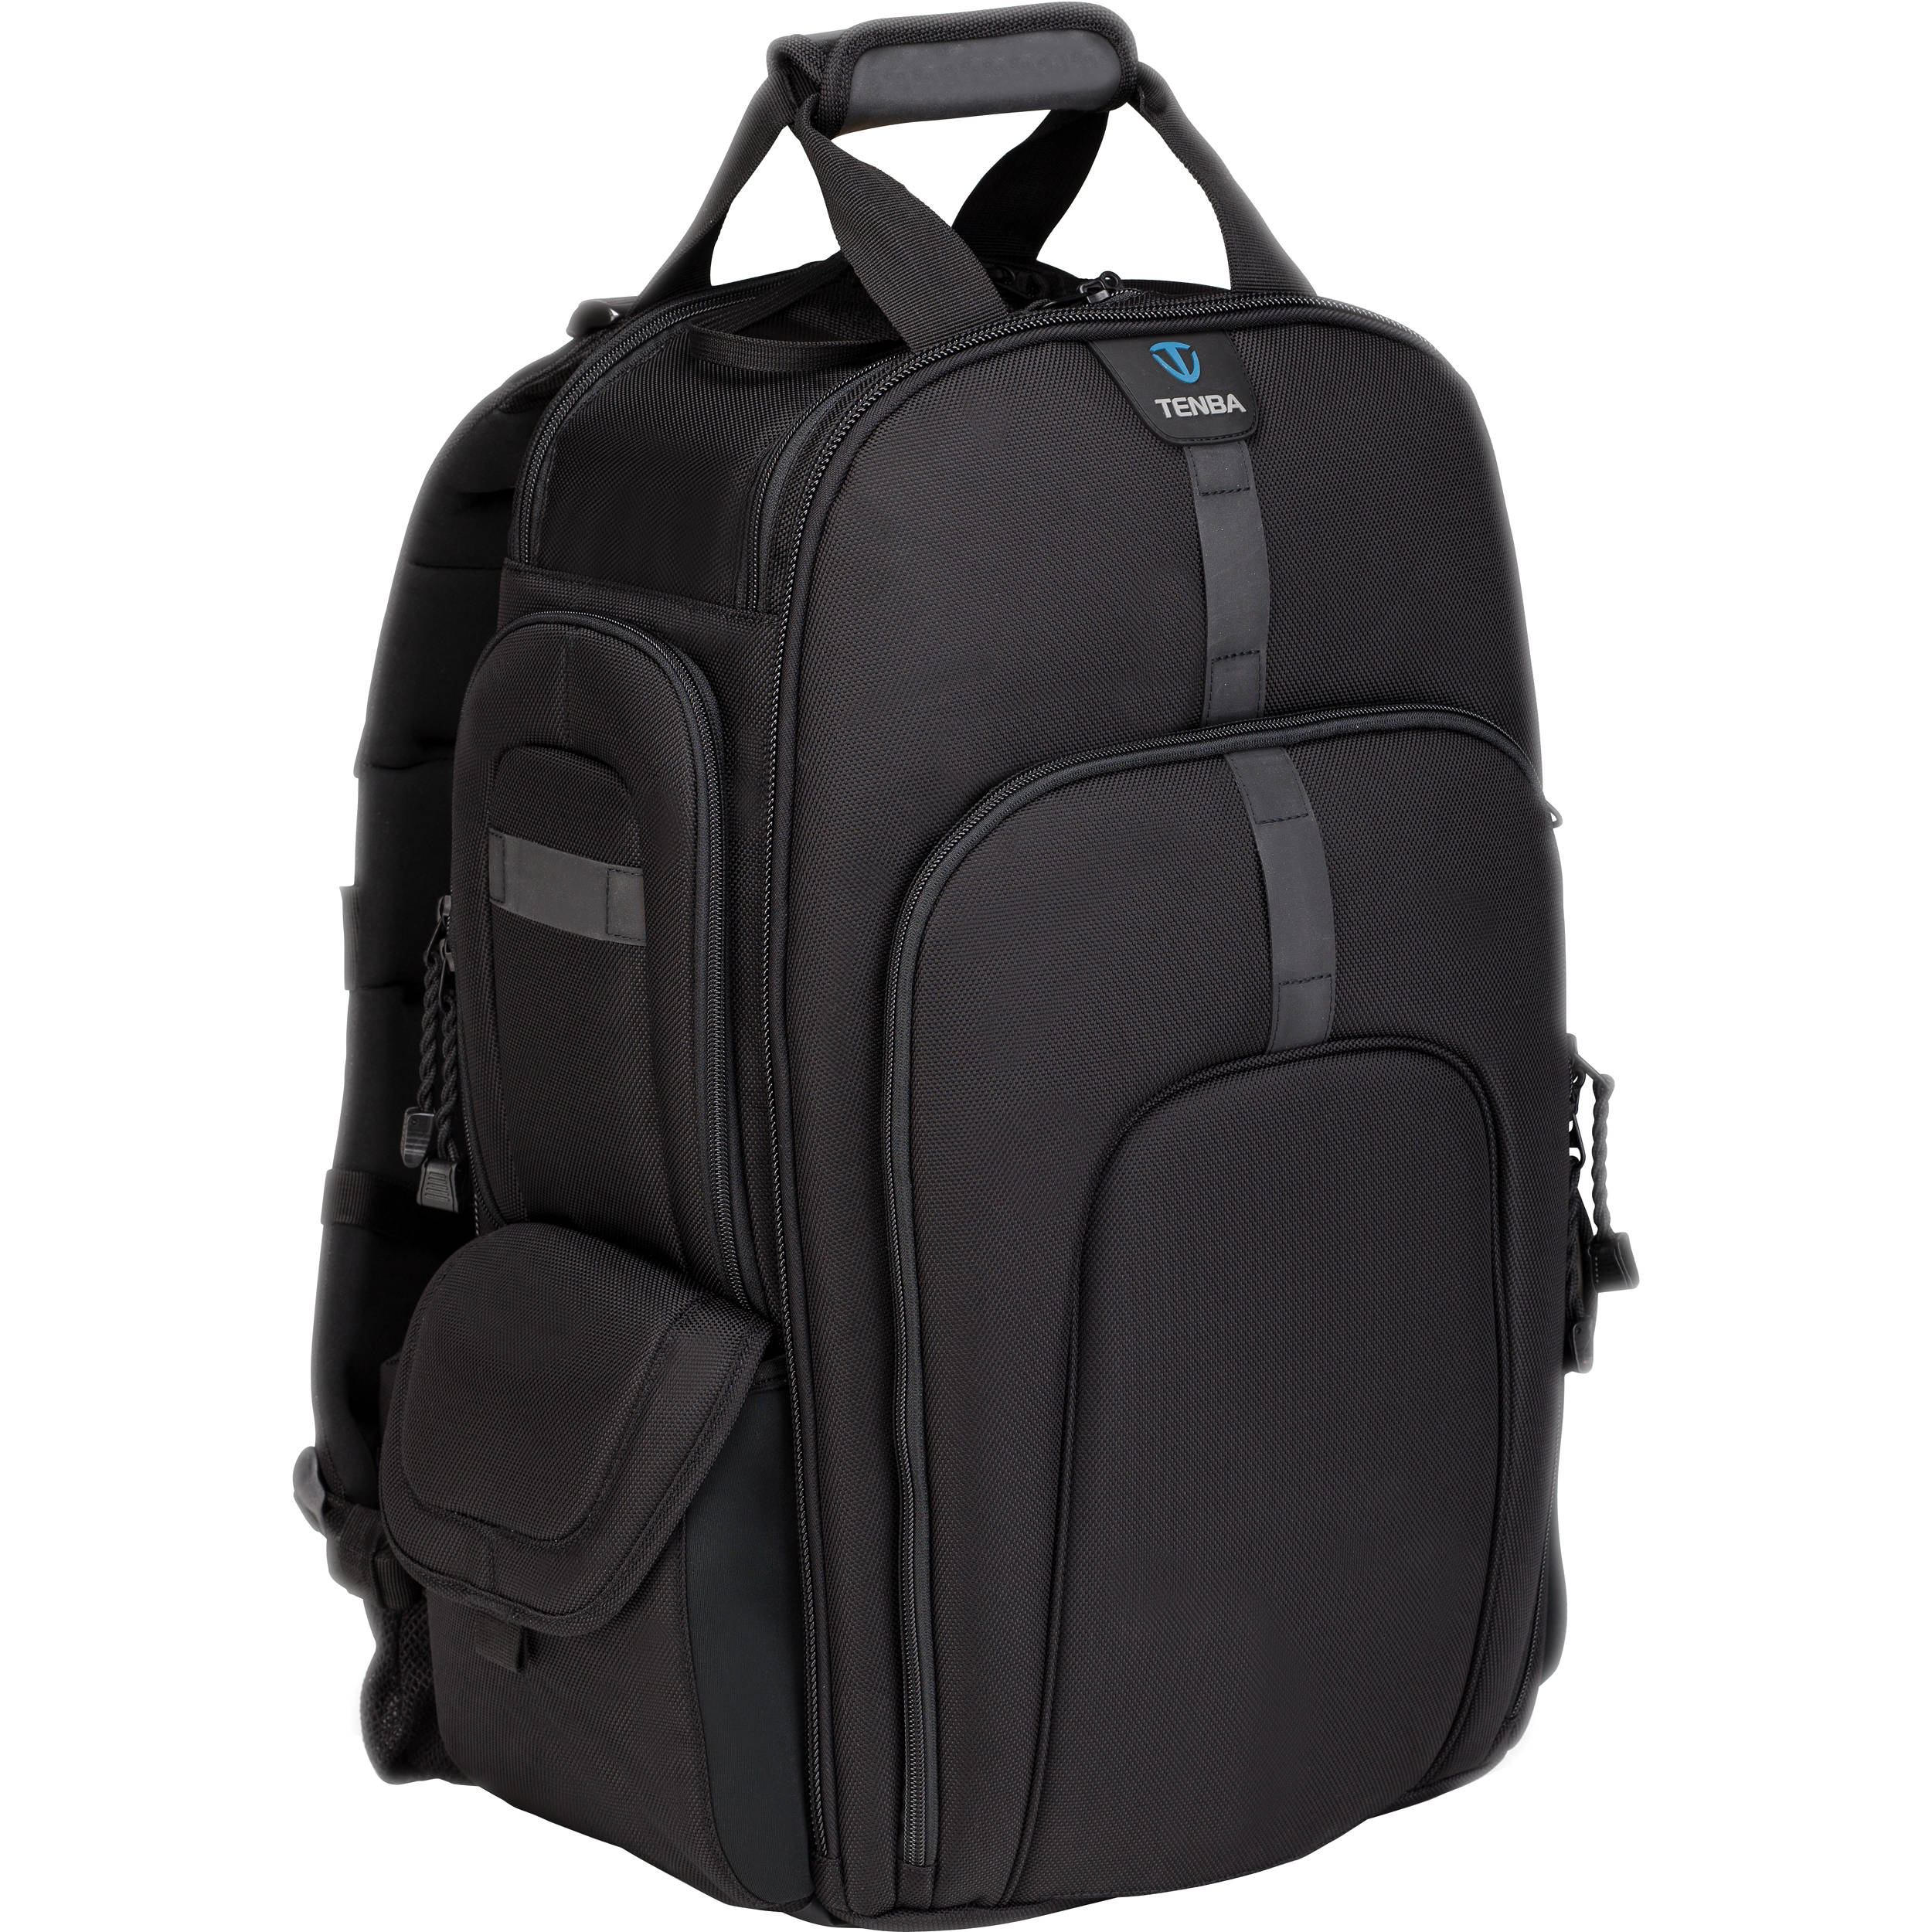 Tenba Roadie II Backback